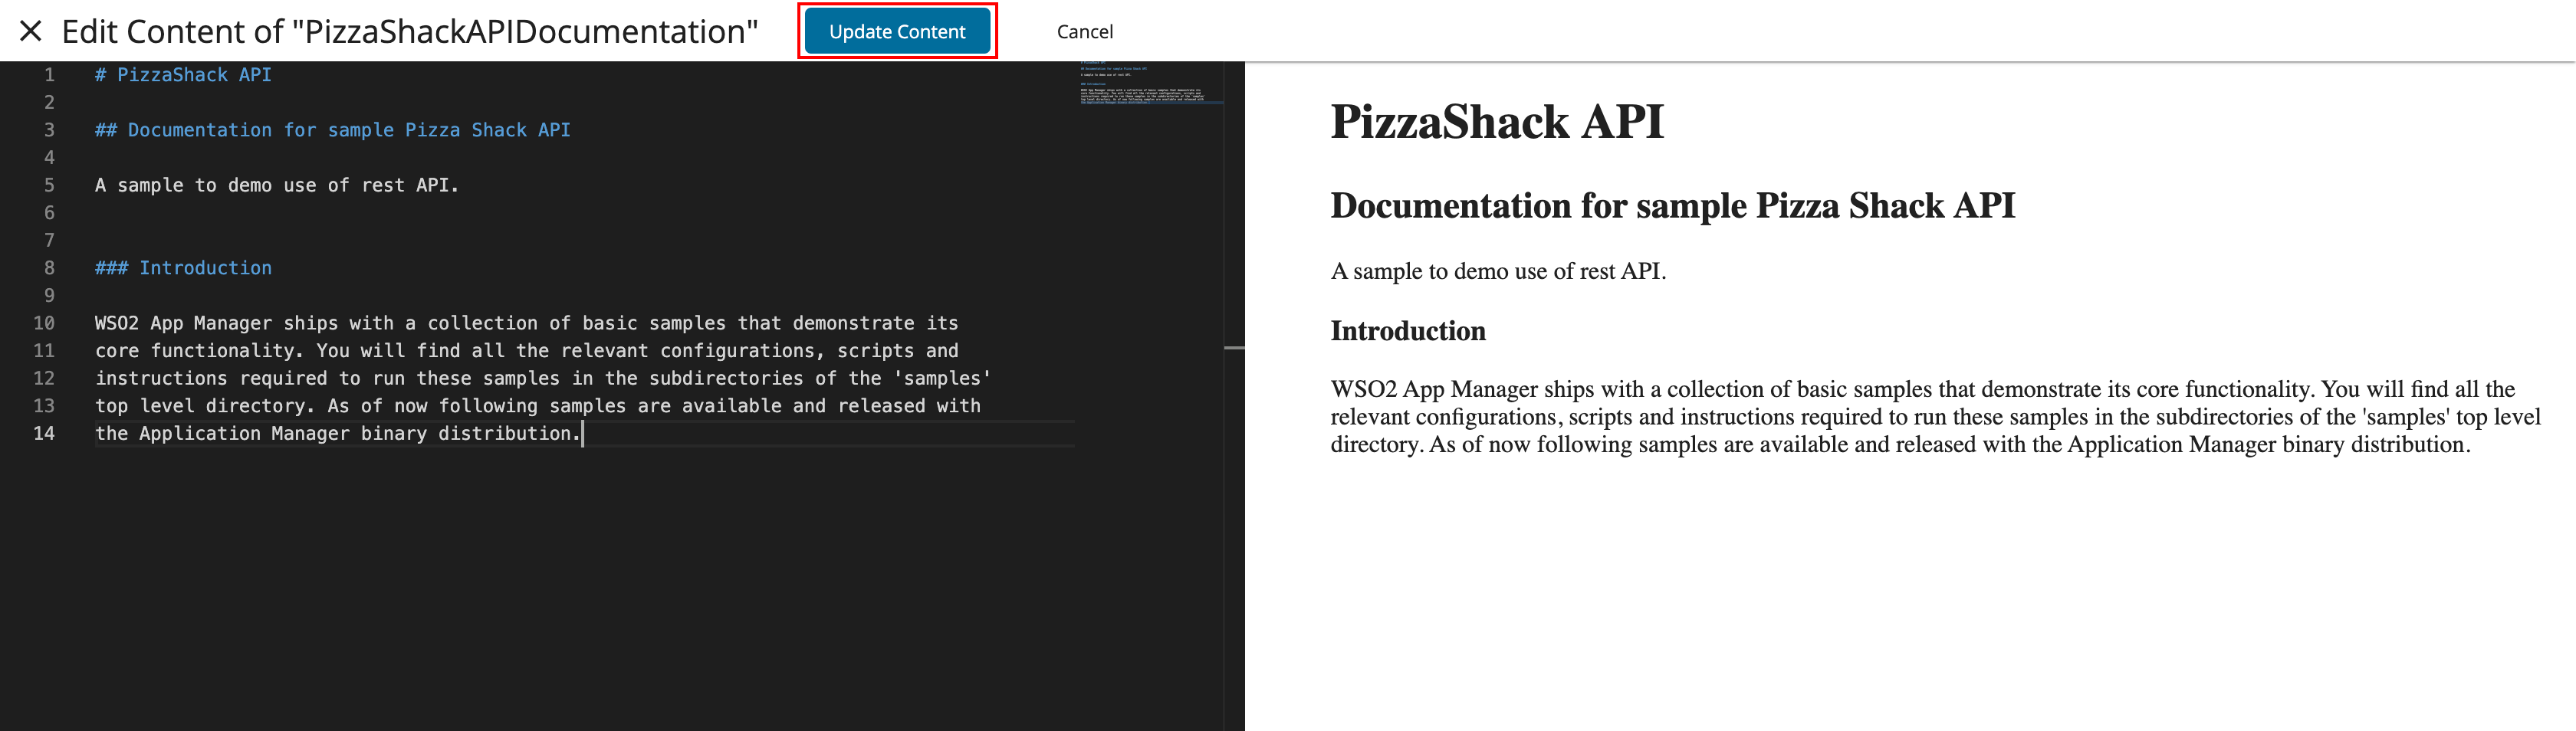 Update content for Markdown documentation